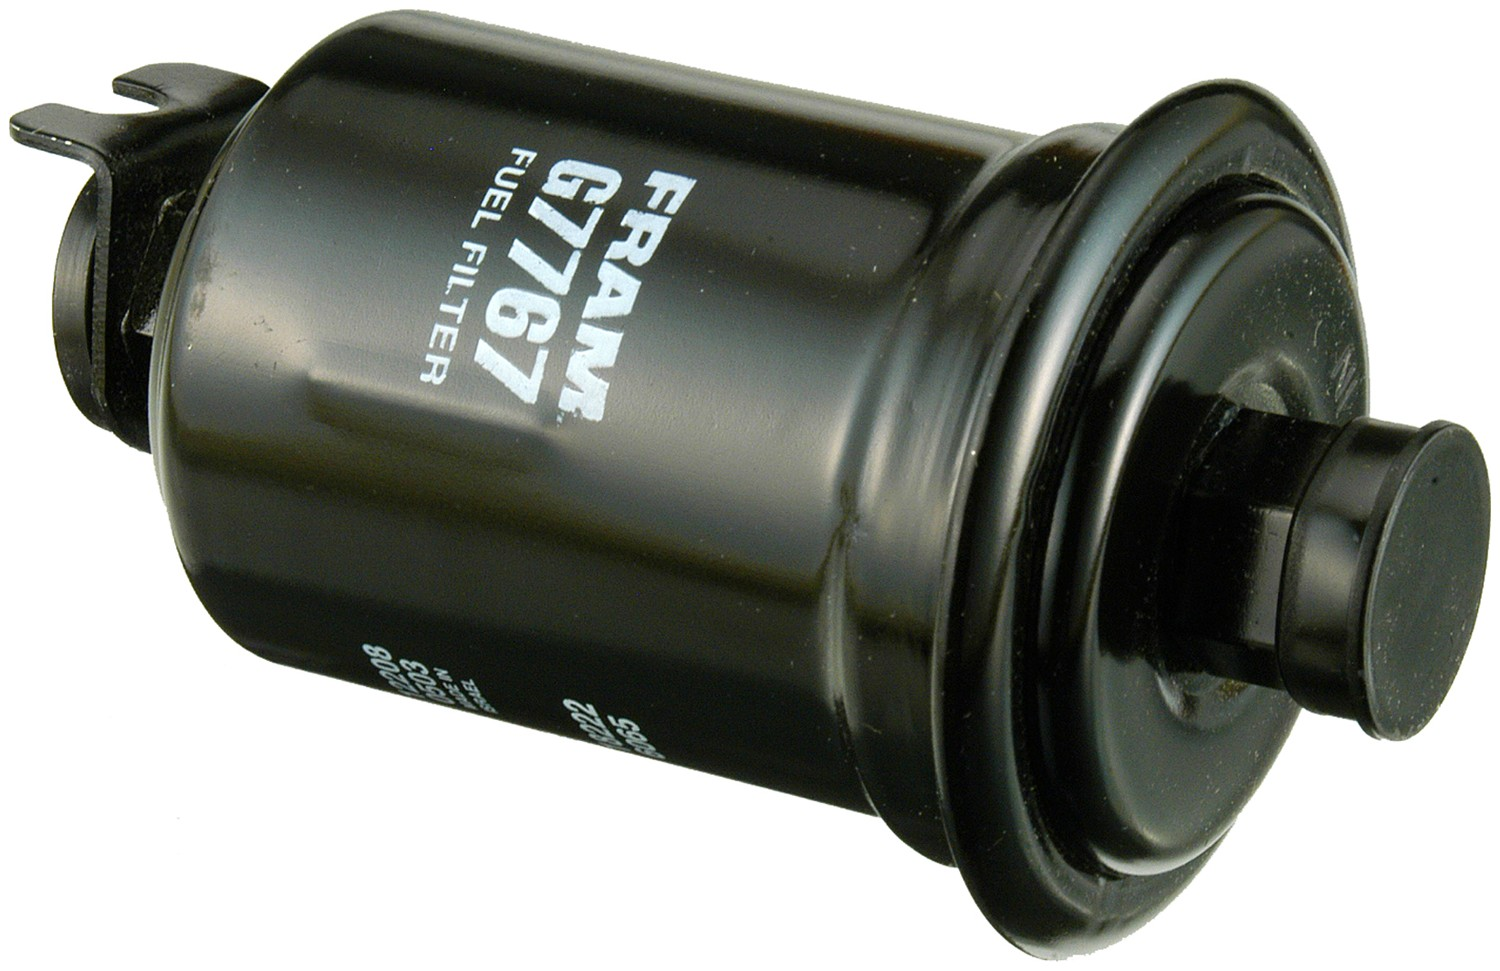 1998 Toyota Camry Fuel Filter Location Ff G7767